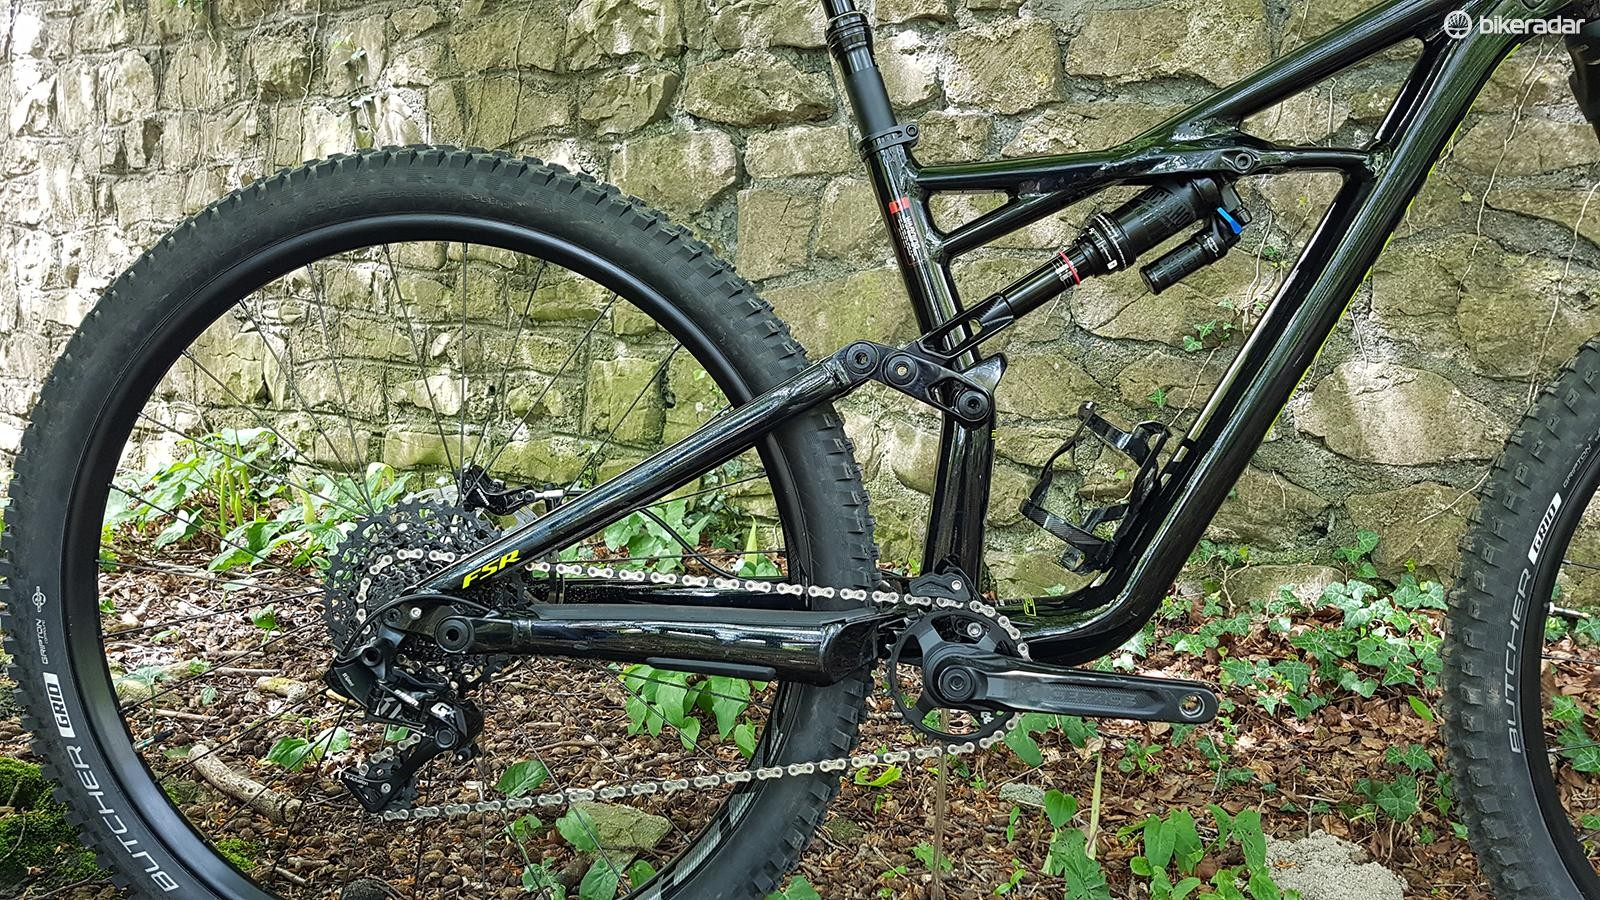 Specialized's classic FSR suspension has stood the test of time